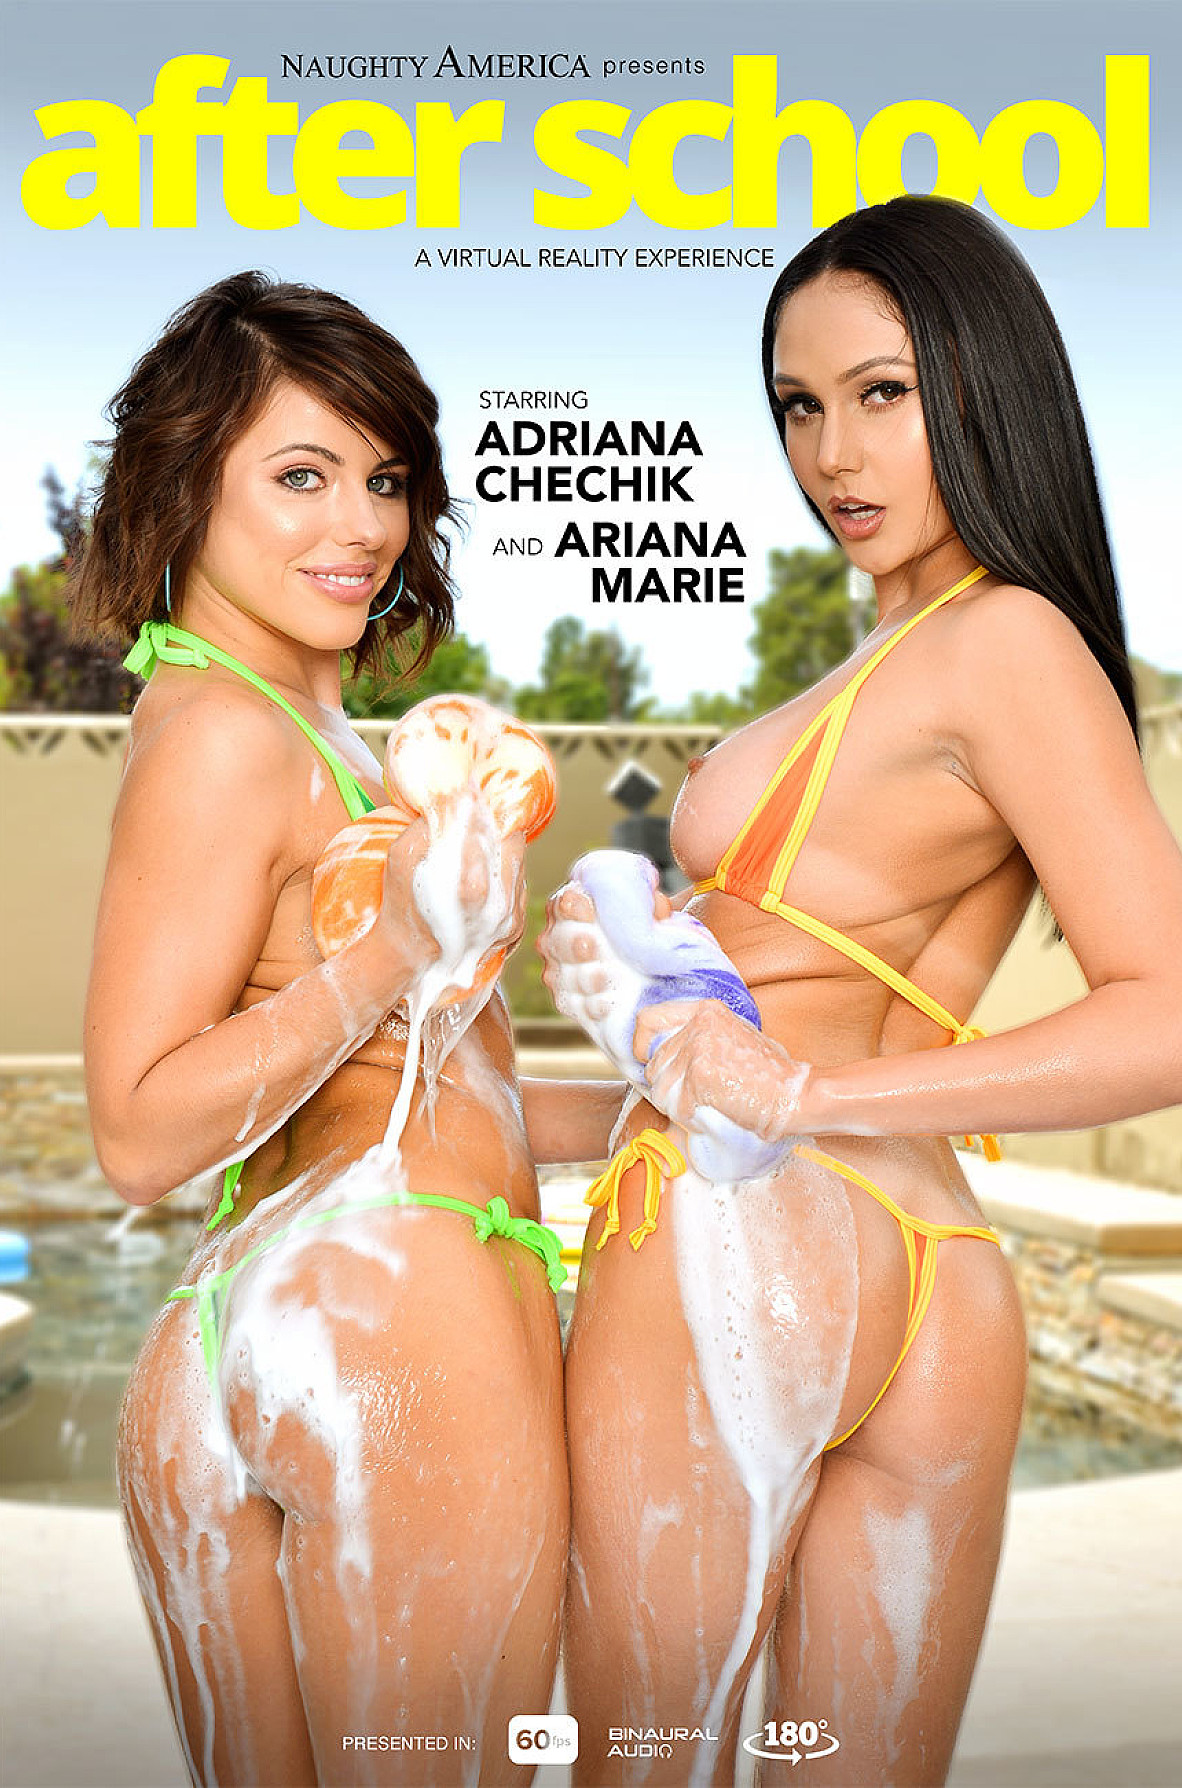 Watch Adriana Chechik, Ariana Marie and Johnny Castle VR video in Naughty America